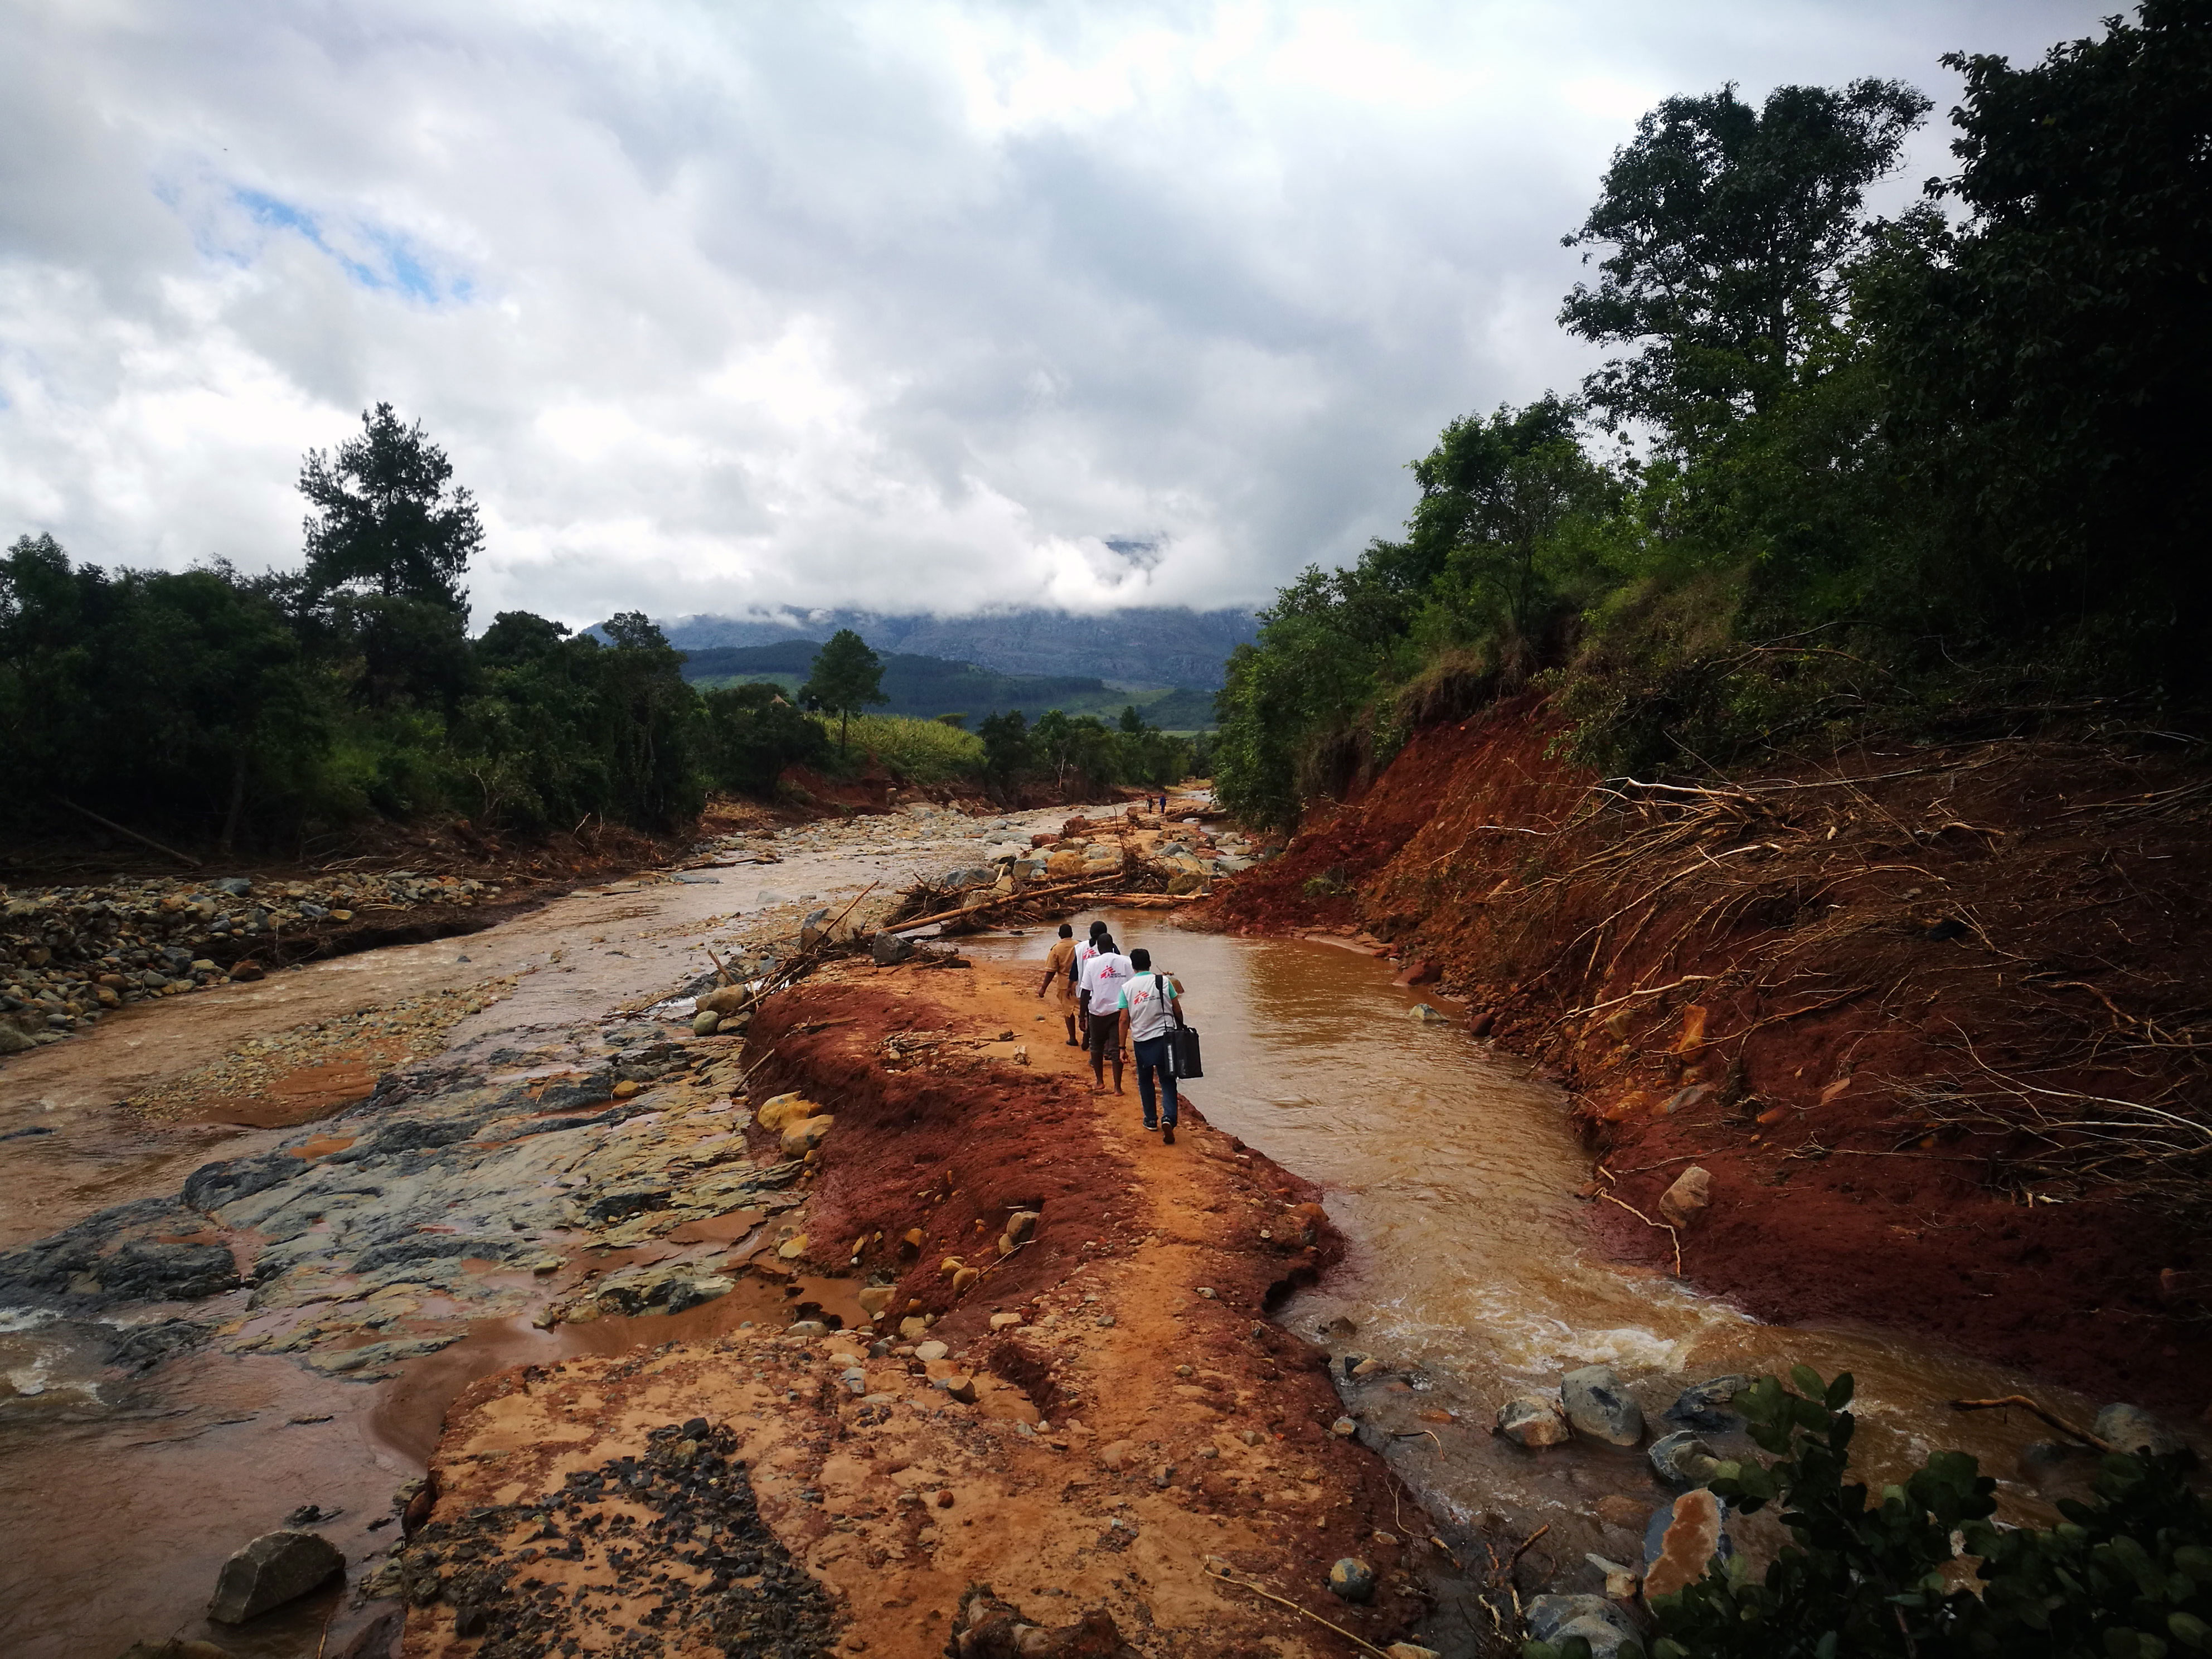 Marthe Frieden: The aftermath of Cyclone Idai—building